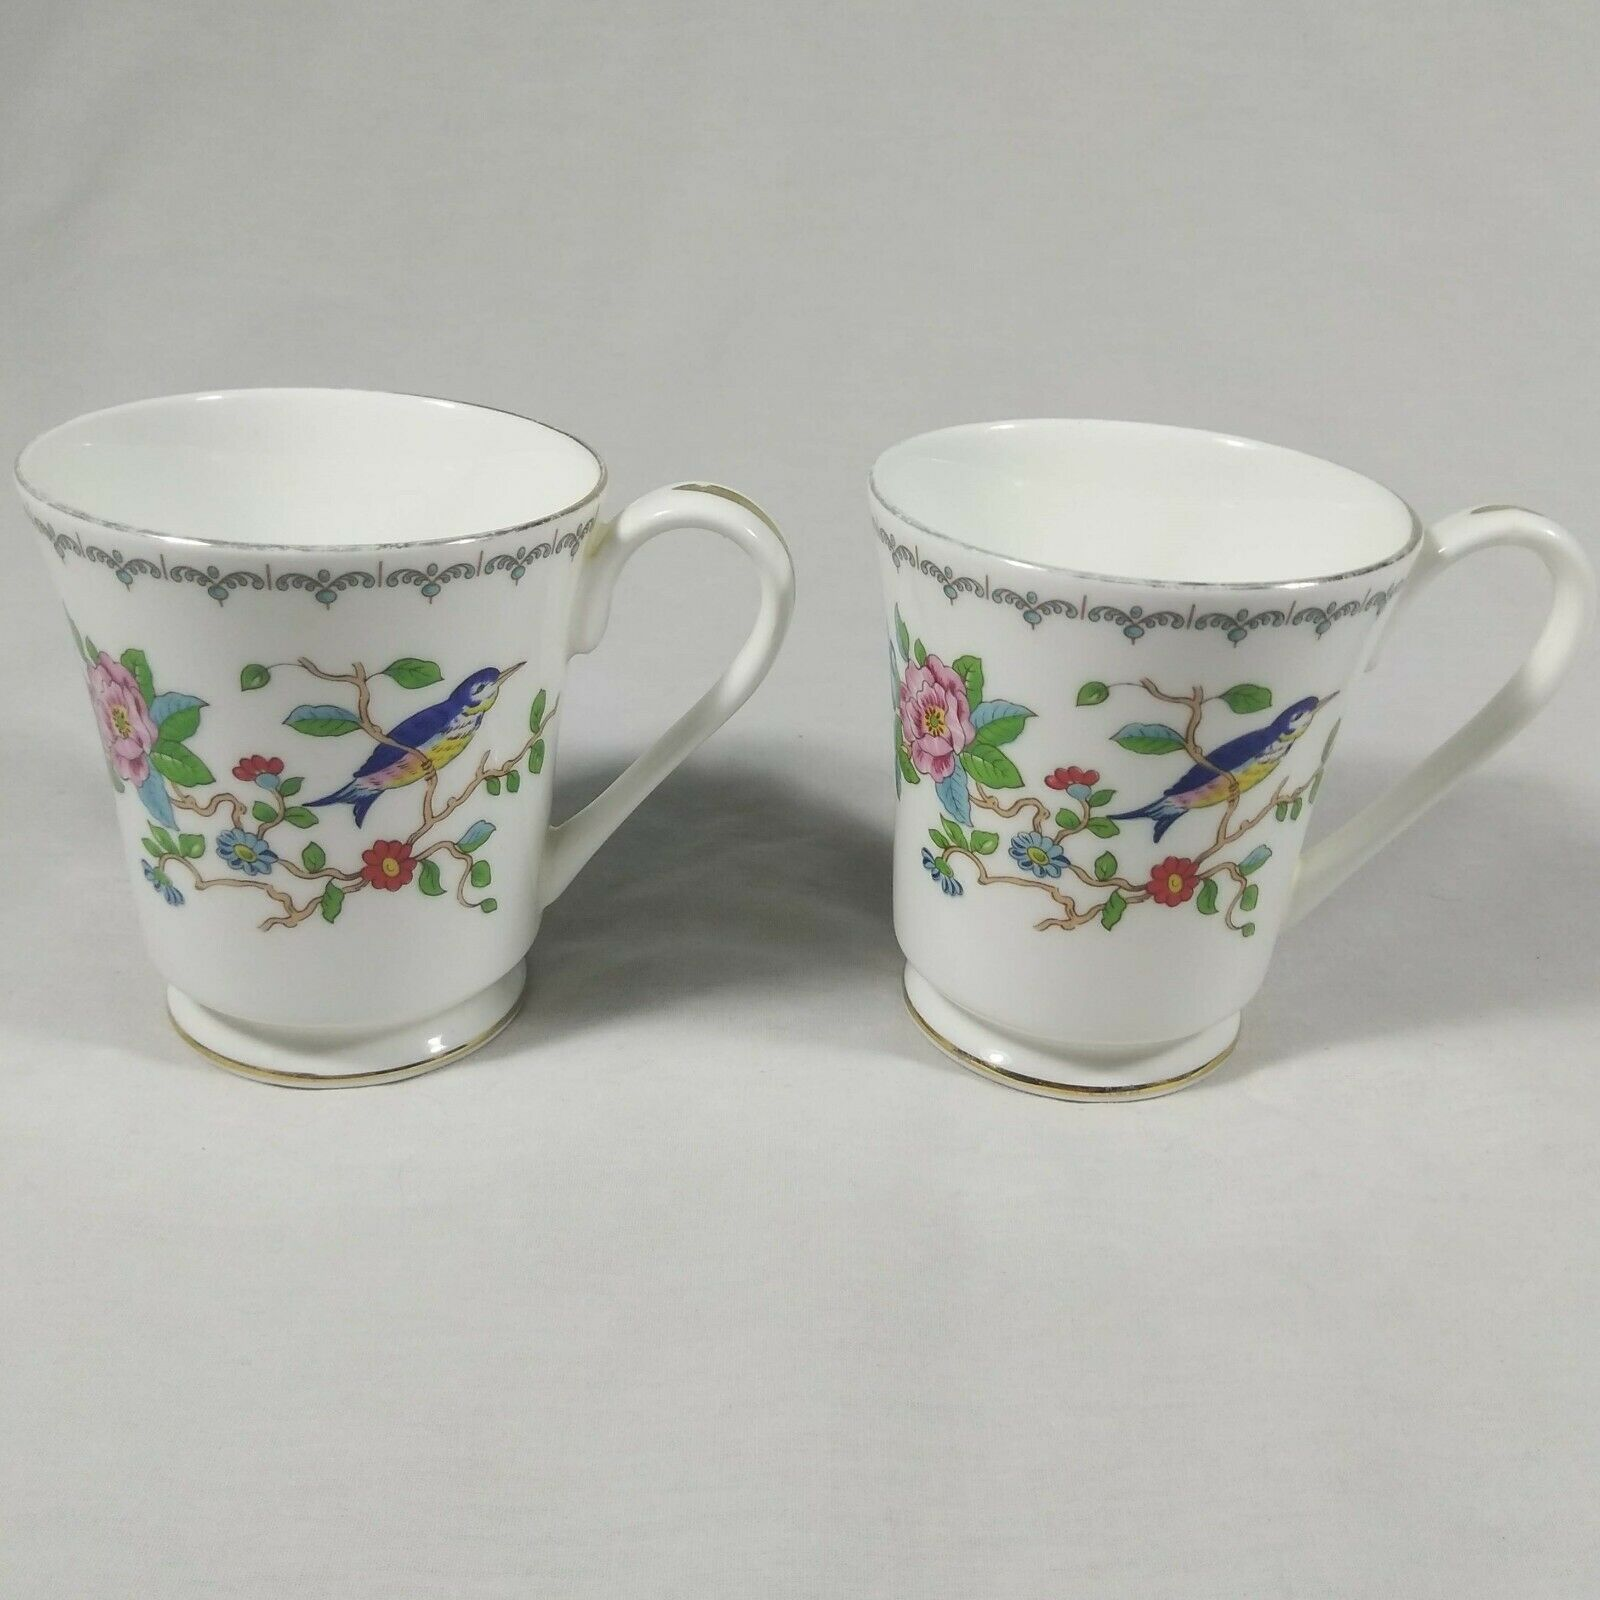 Aynsley Pembroke Tea Cups Fine English Bone China Birds Floral Set of 2 Mugs